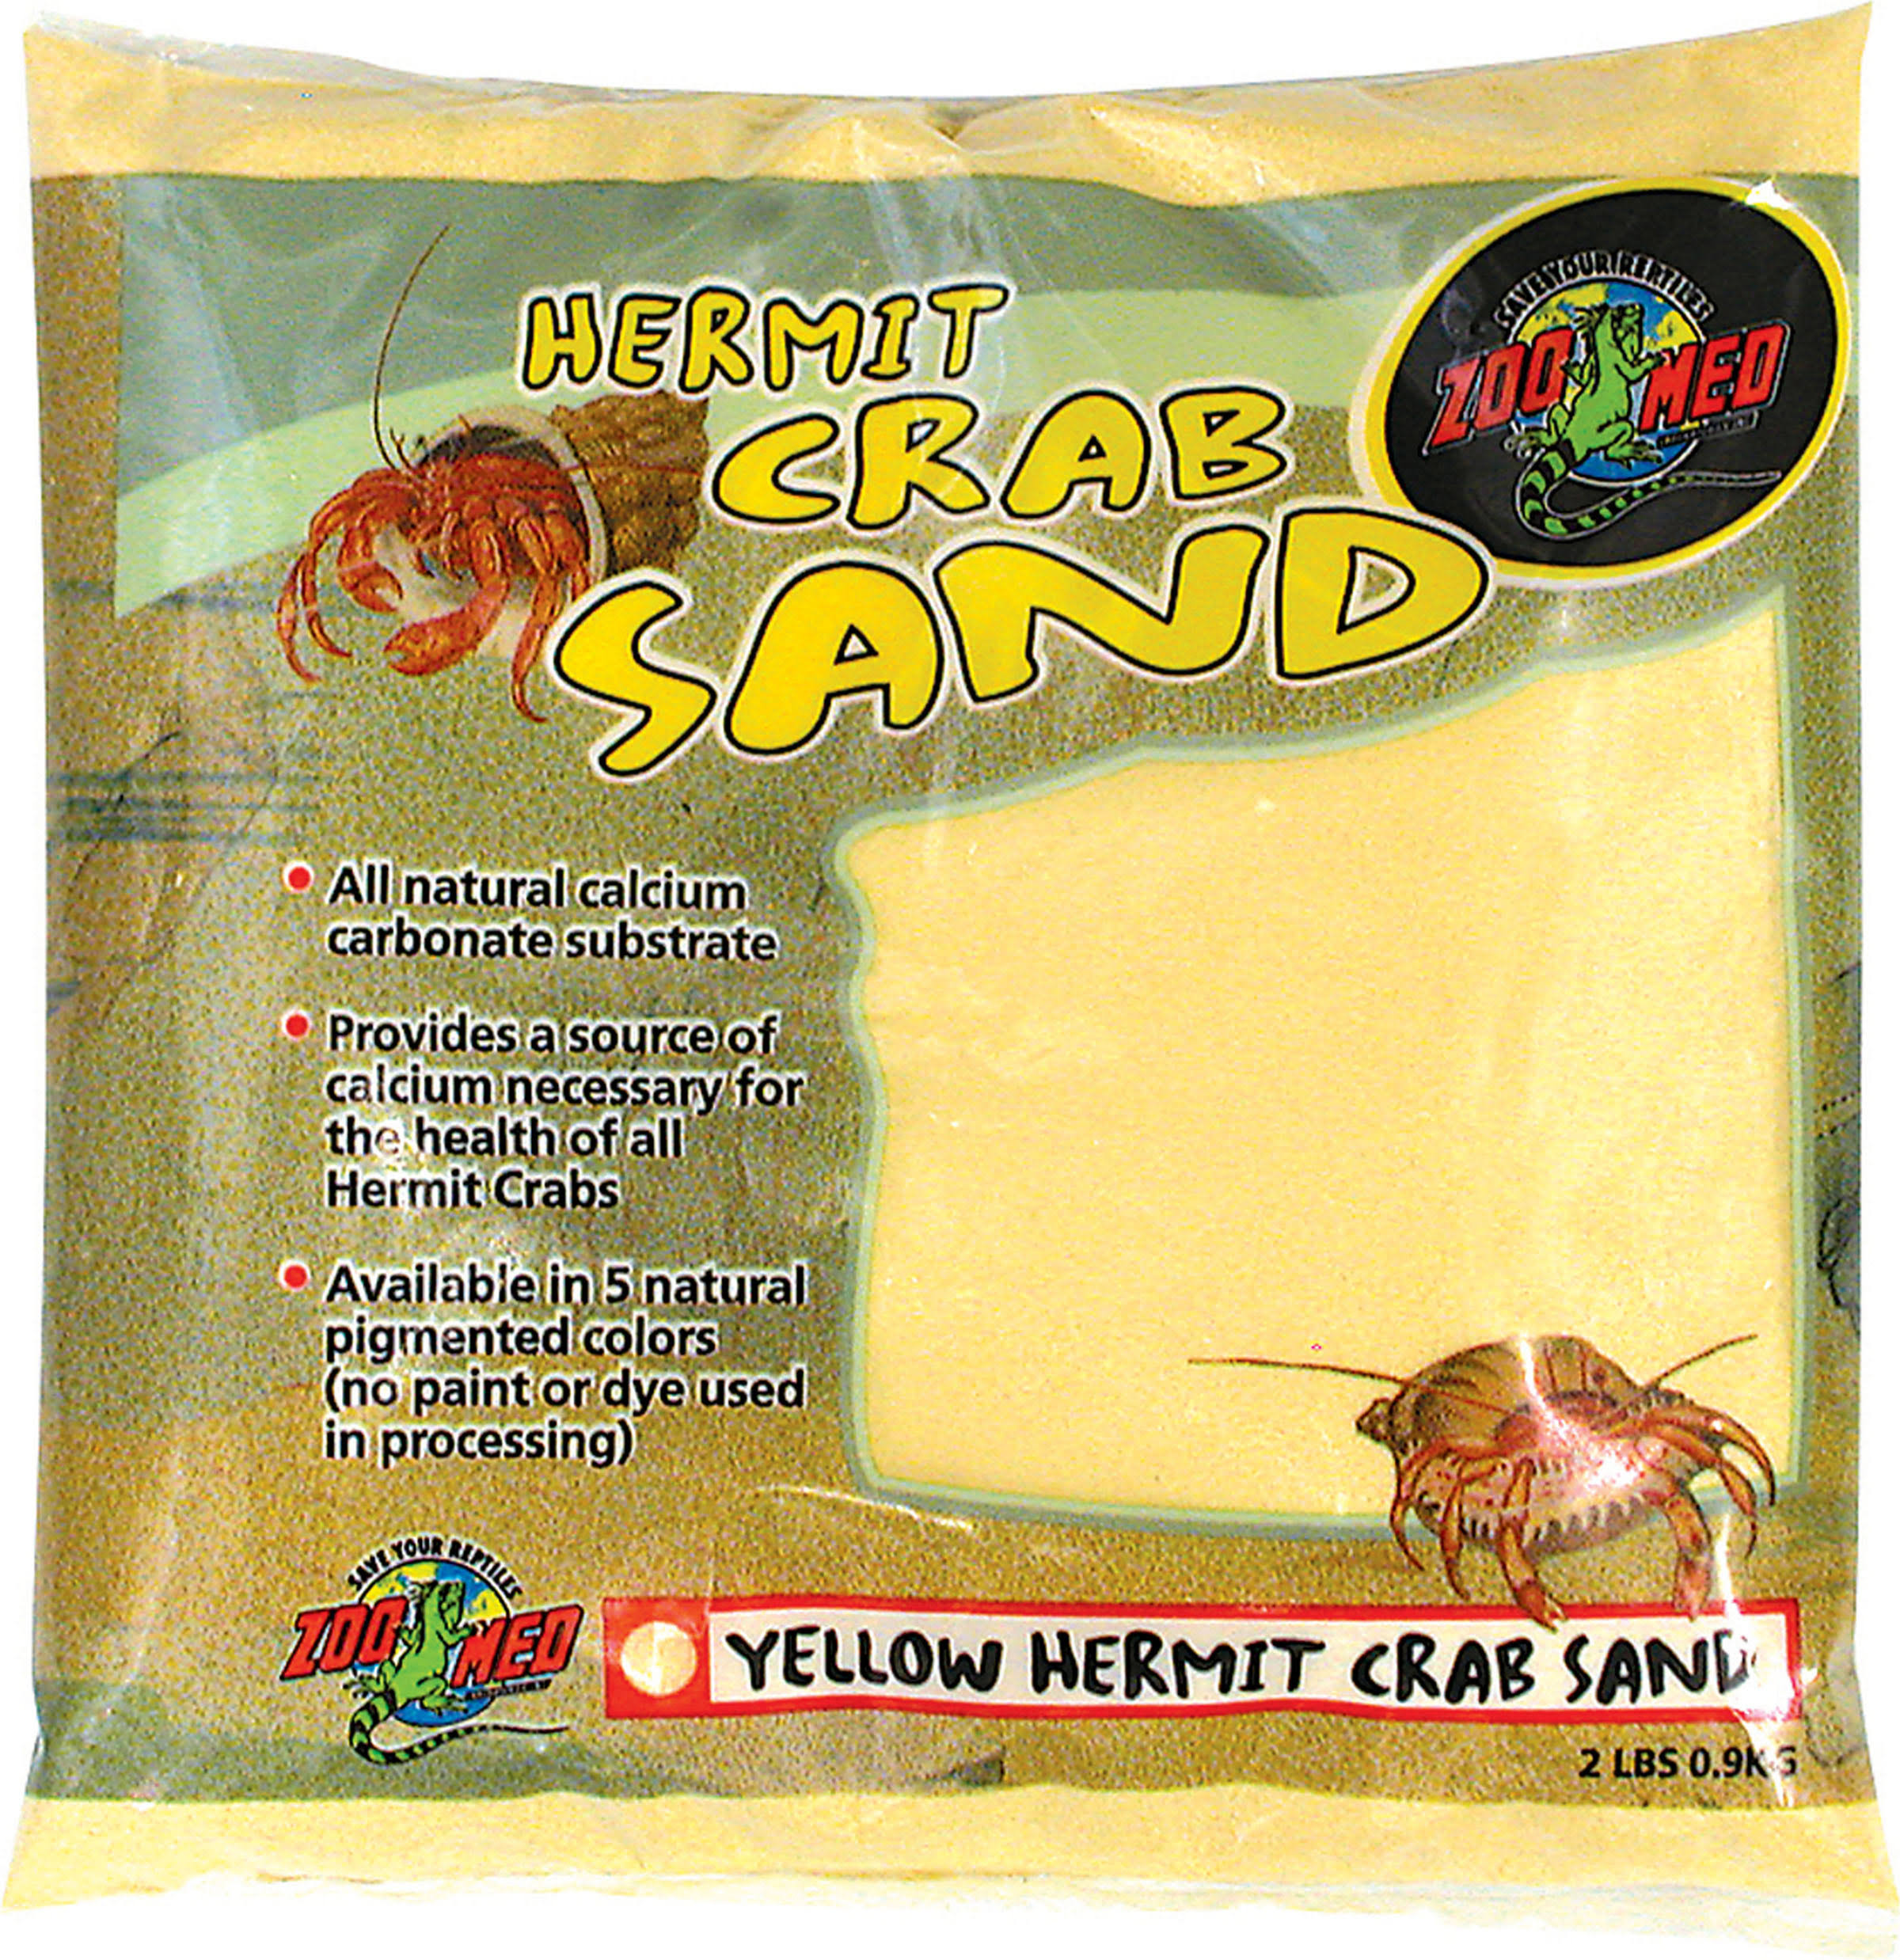 Zoo Med Laboratories Hermit Crab Sand - 2lbs, Sand Yellow